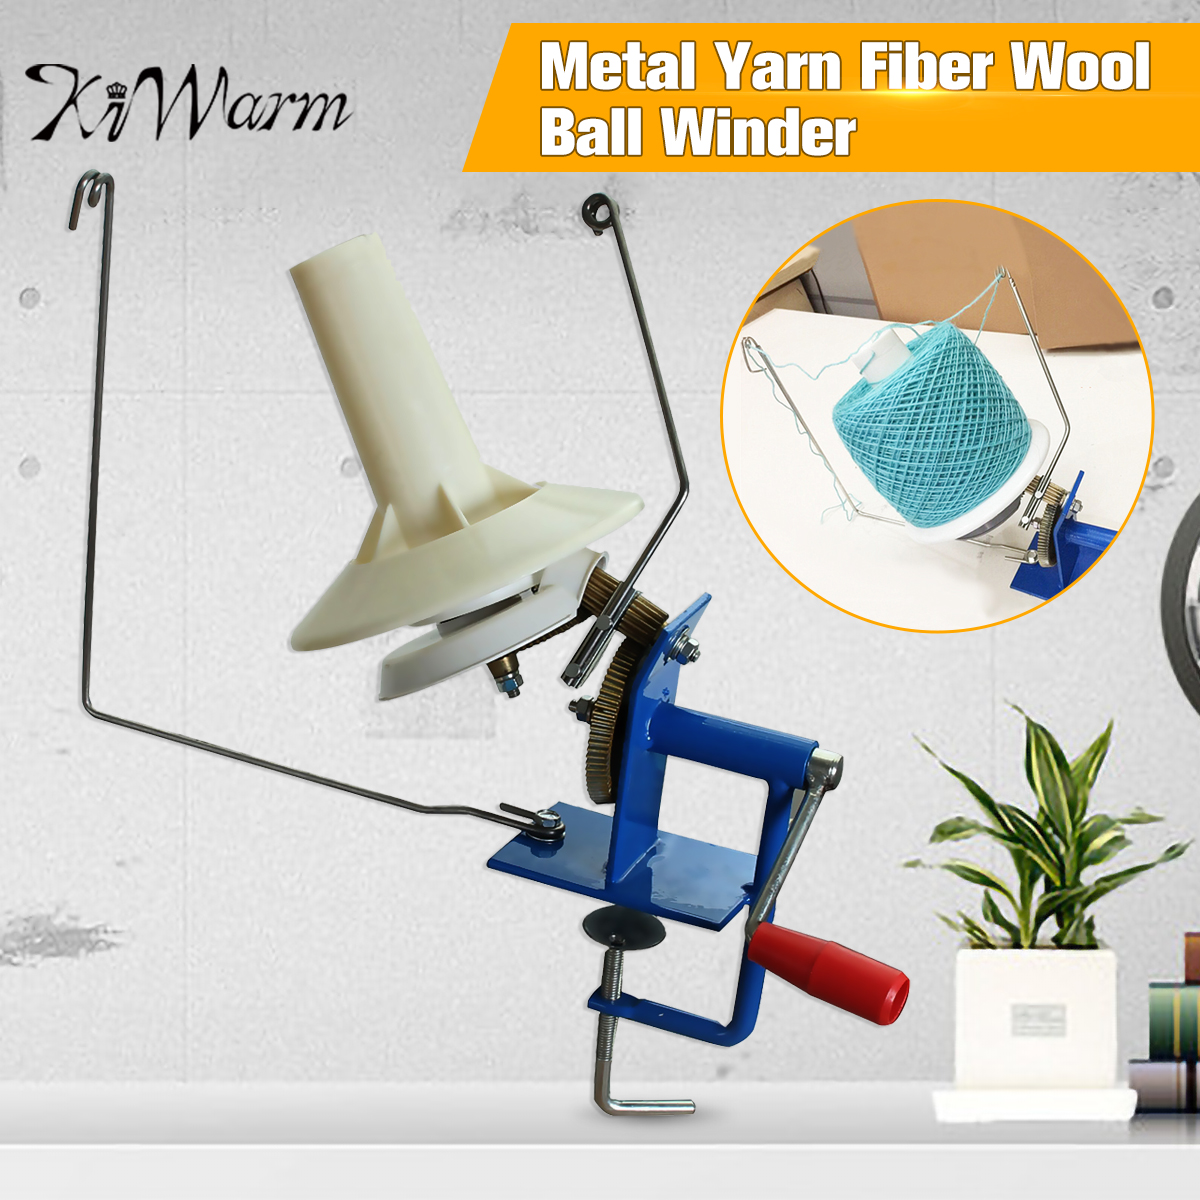 KiWarm Durable Large Metal Yarn Fiber String Ball Wool Winder Holder Winder Fiber Hand Operated Cable Winder Machine Heavy DutyKiWarm Durable Large Metal Yarn Fiber String Ball Wool Winder Holder Winder Fiber Hand Operated Cable Winder Machine Heavy Duty